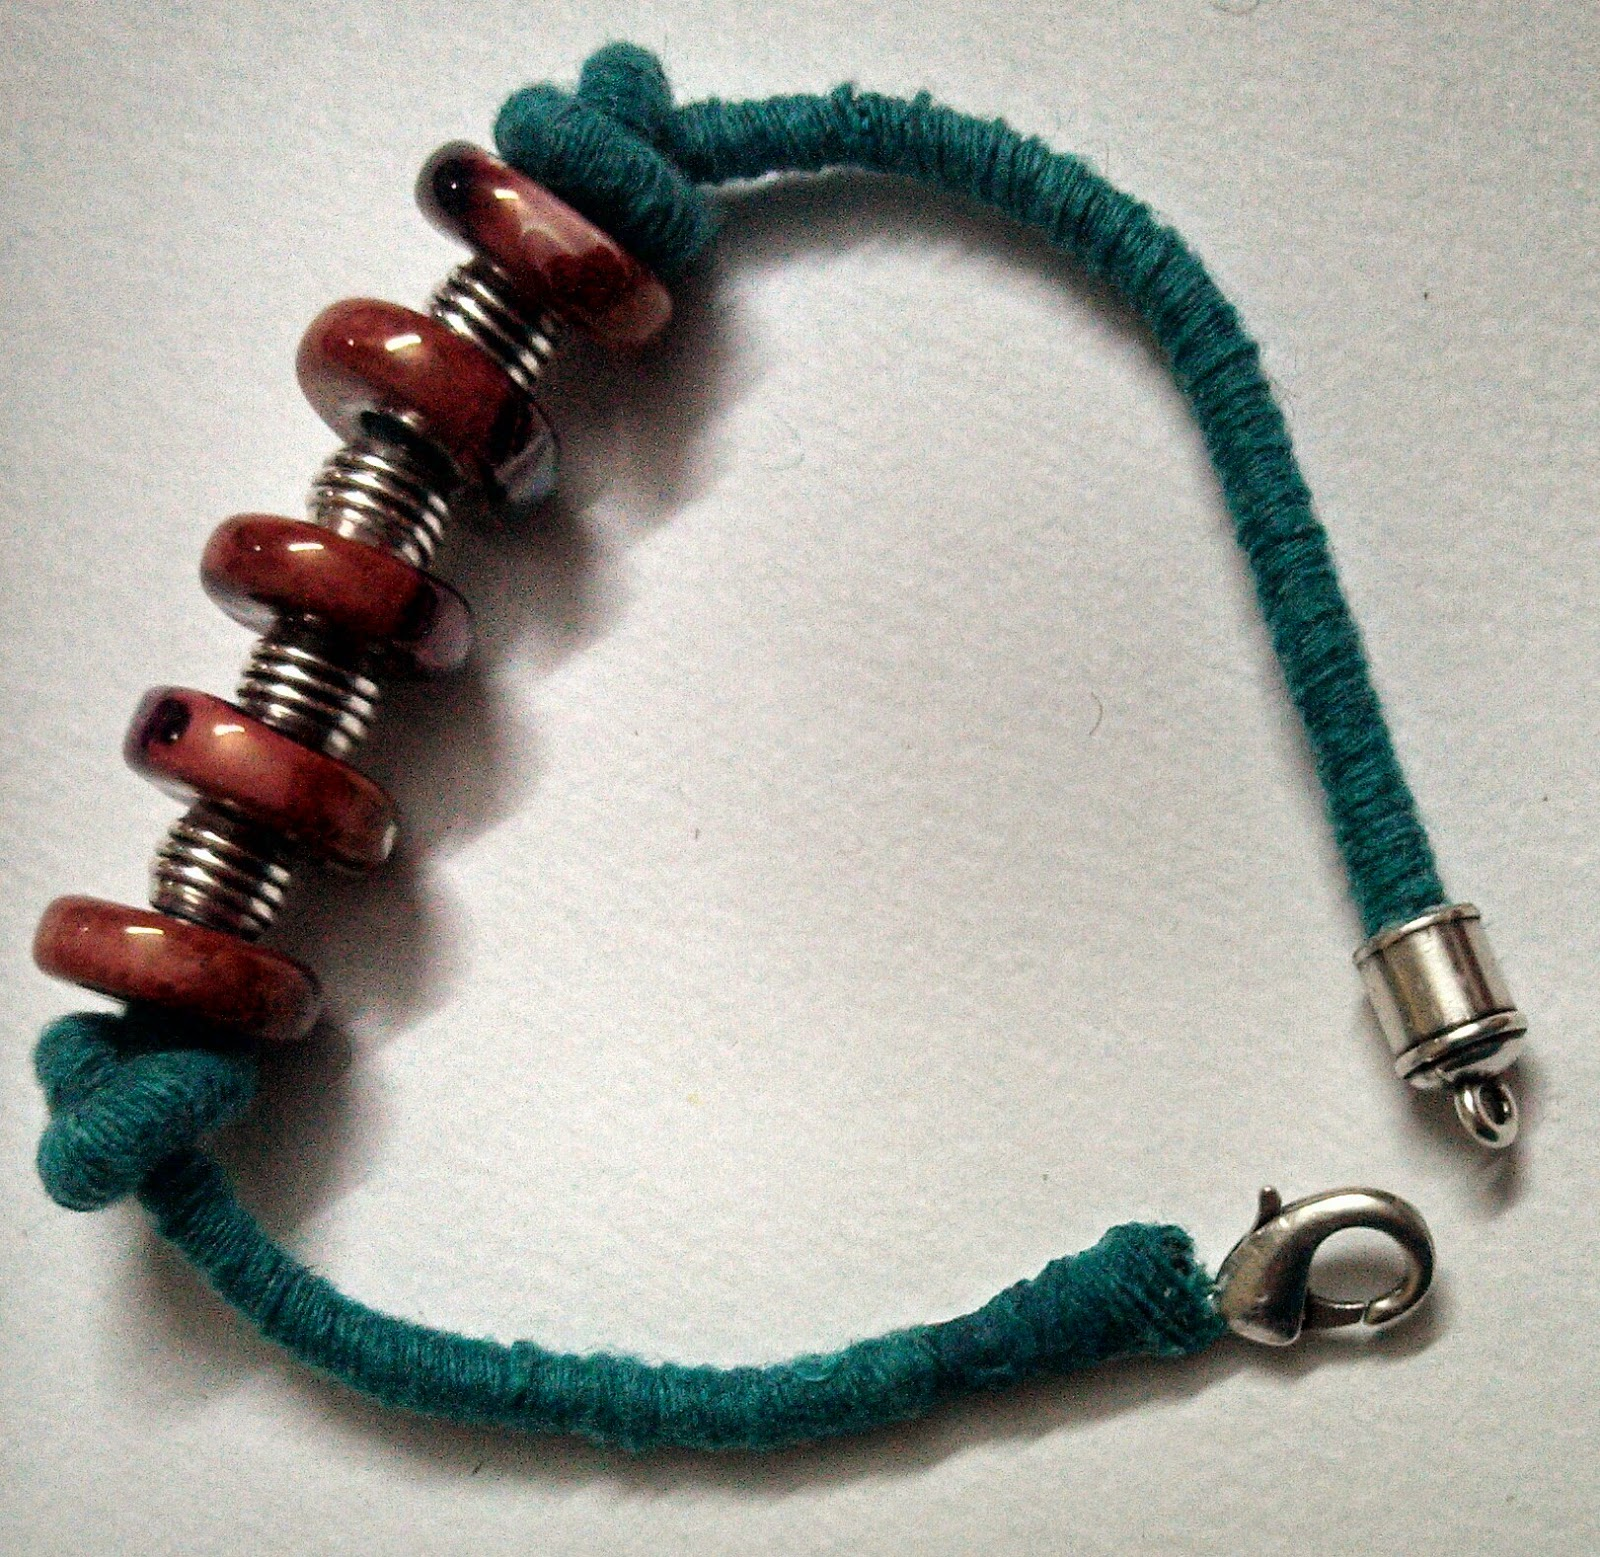 http://creativekhadija.com/2014/04/make-ceramic-beads-bracelet/